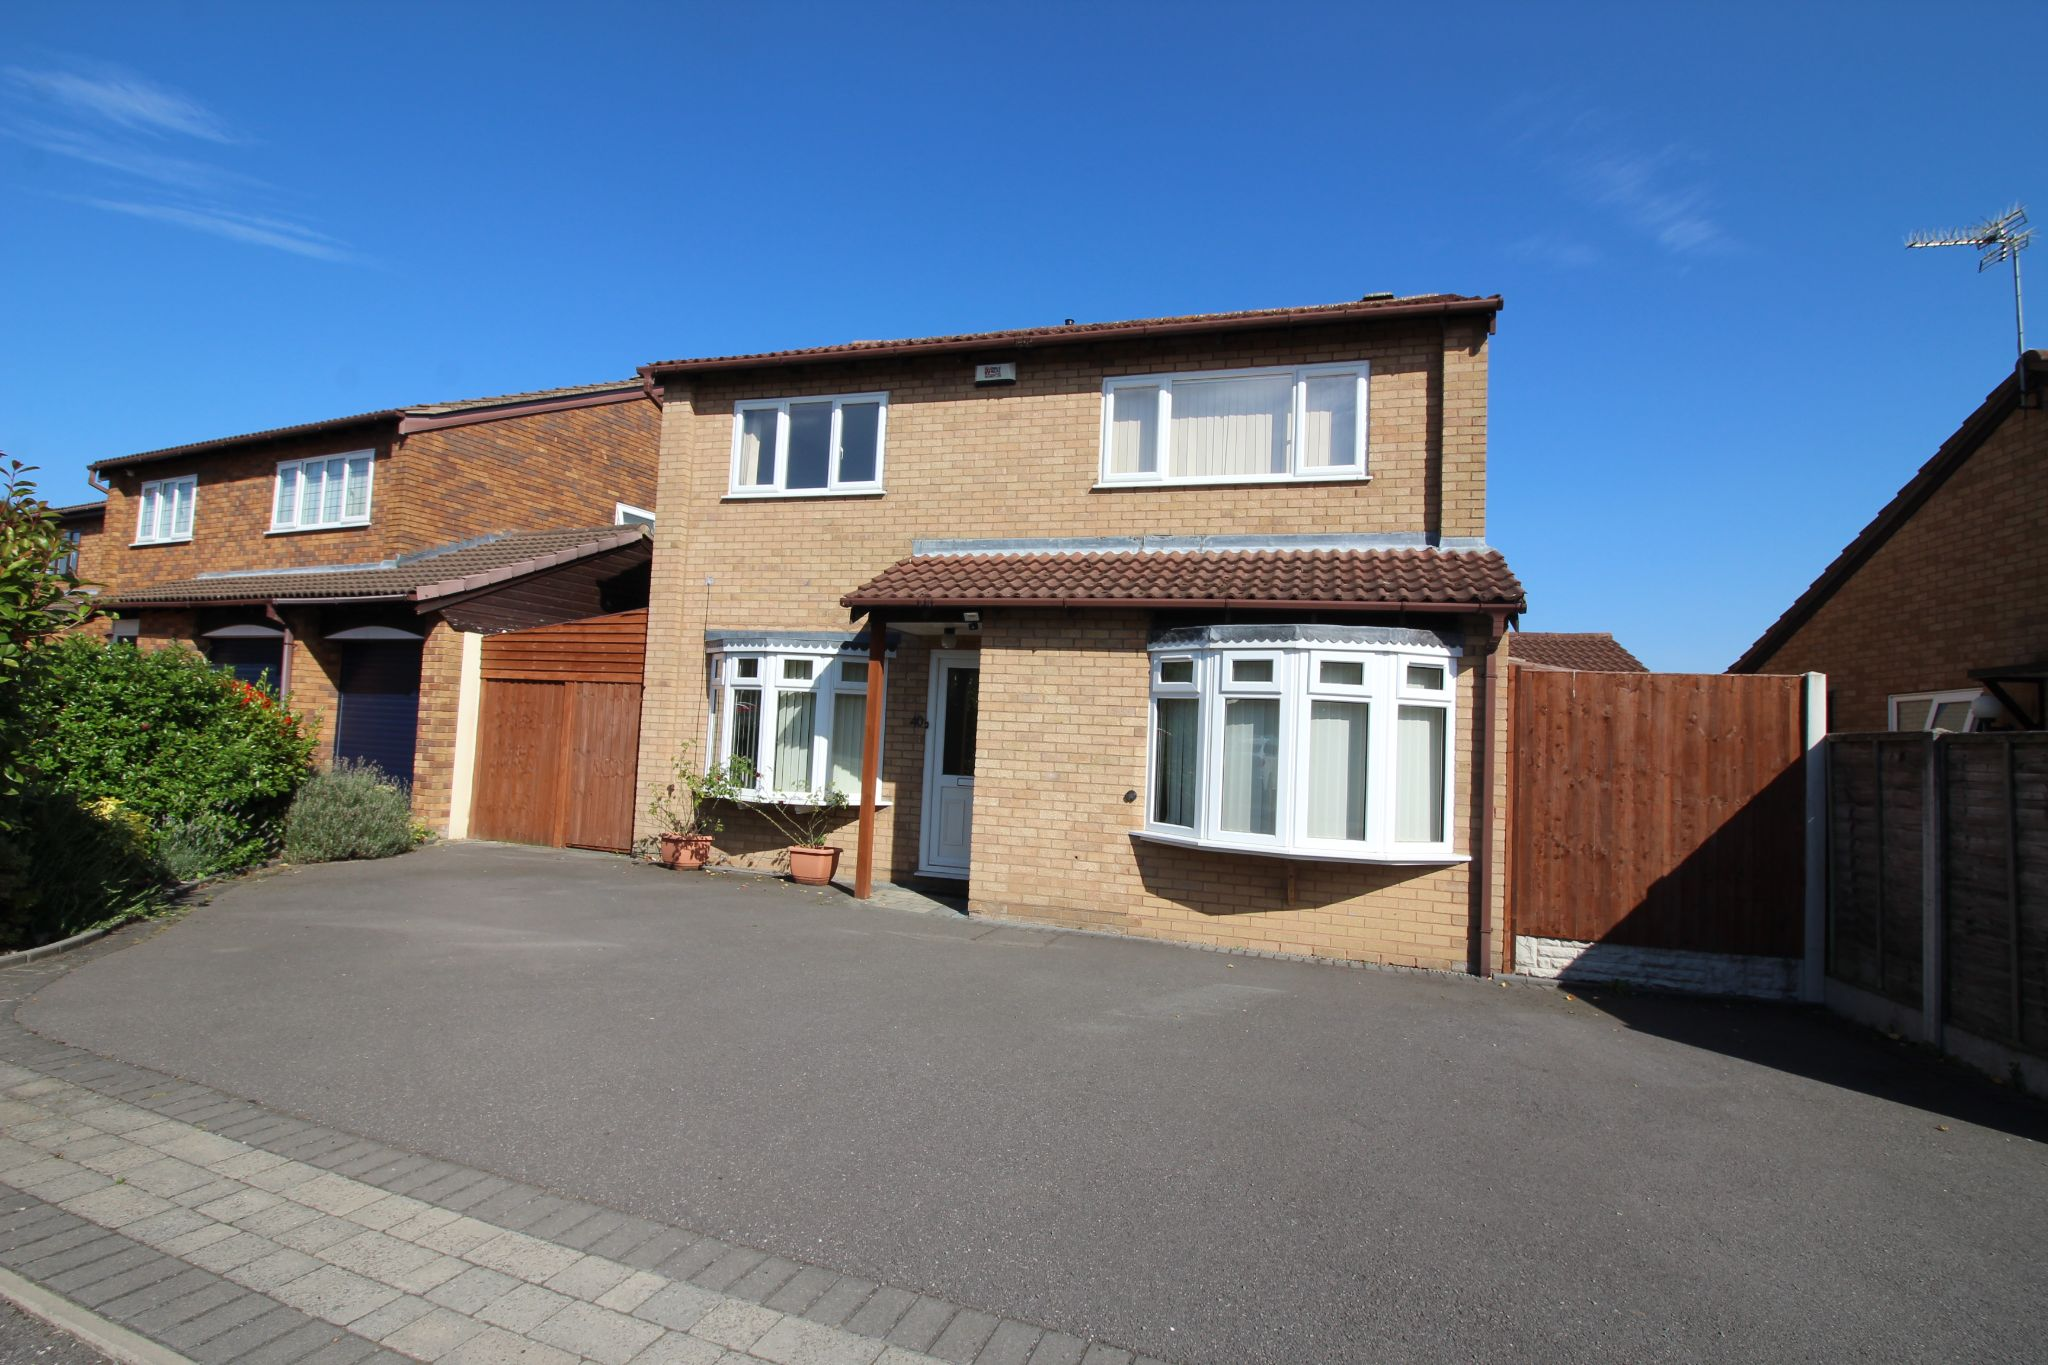 4 bedroom detached house To Let in Solihull - Property photograph.